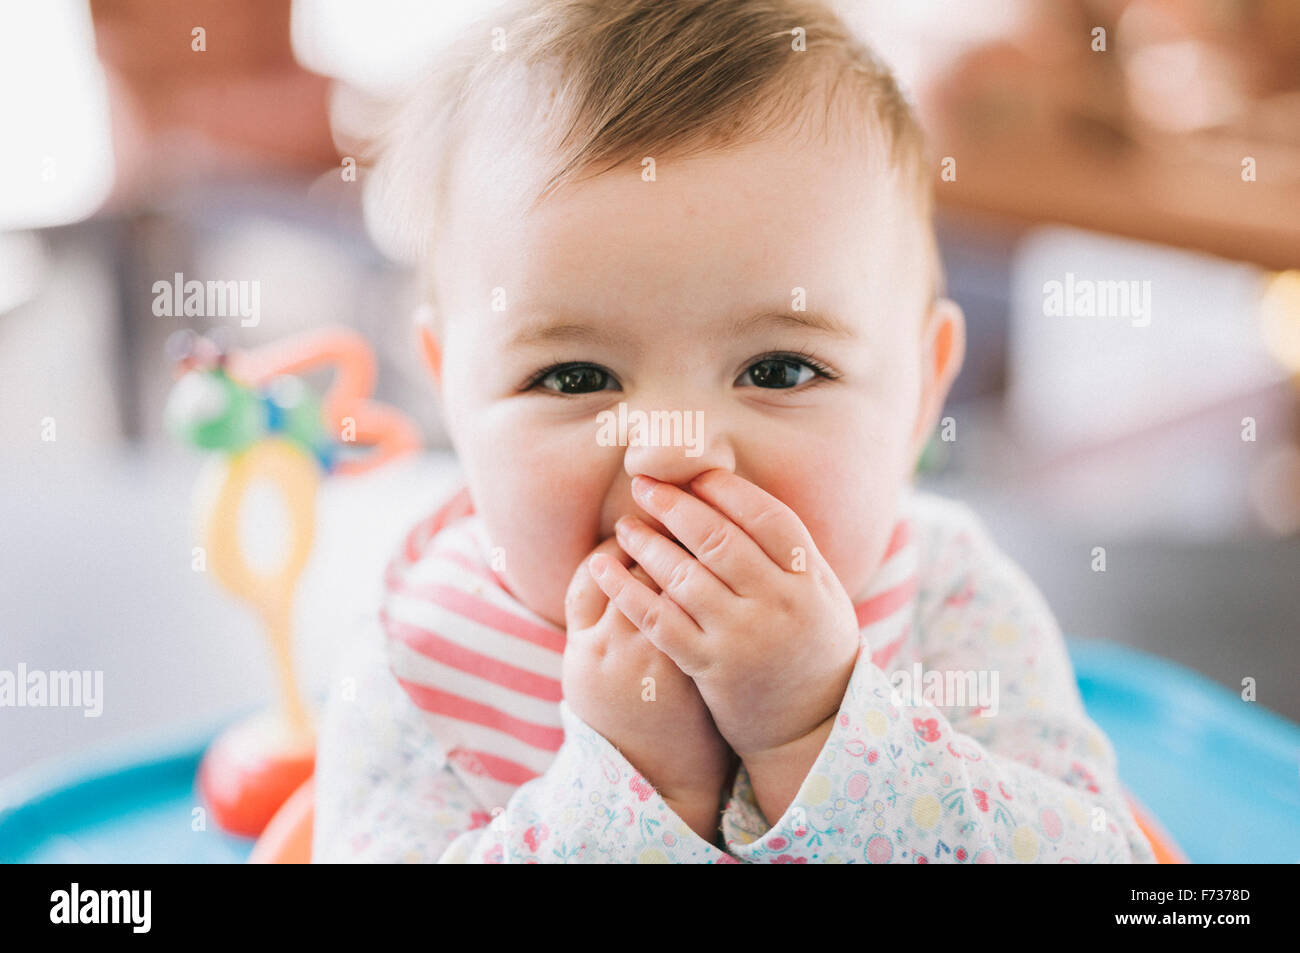 baby girl stock photos & baby girl stock images - alamy